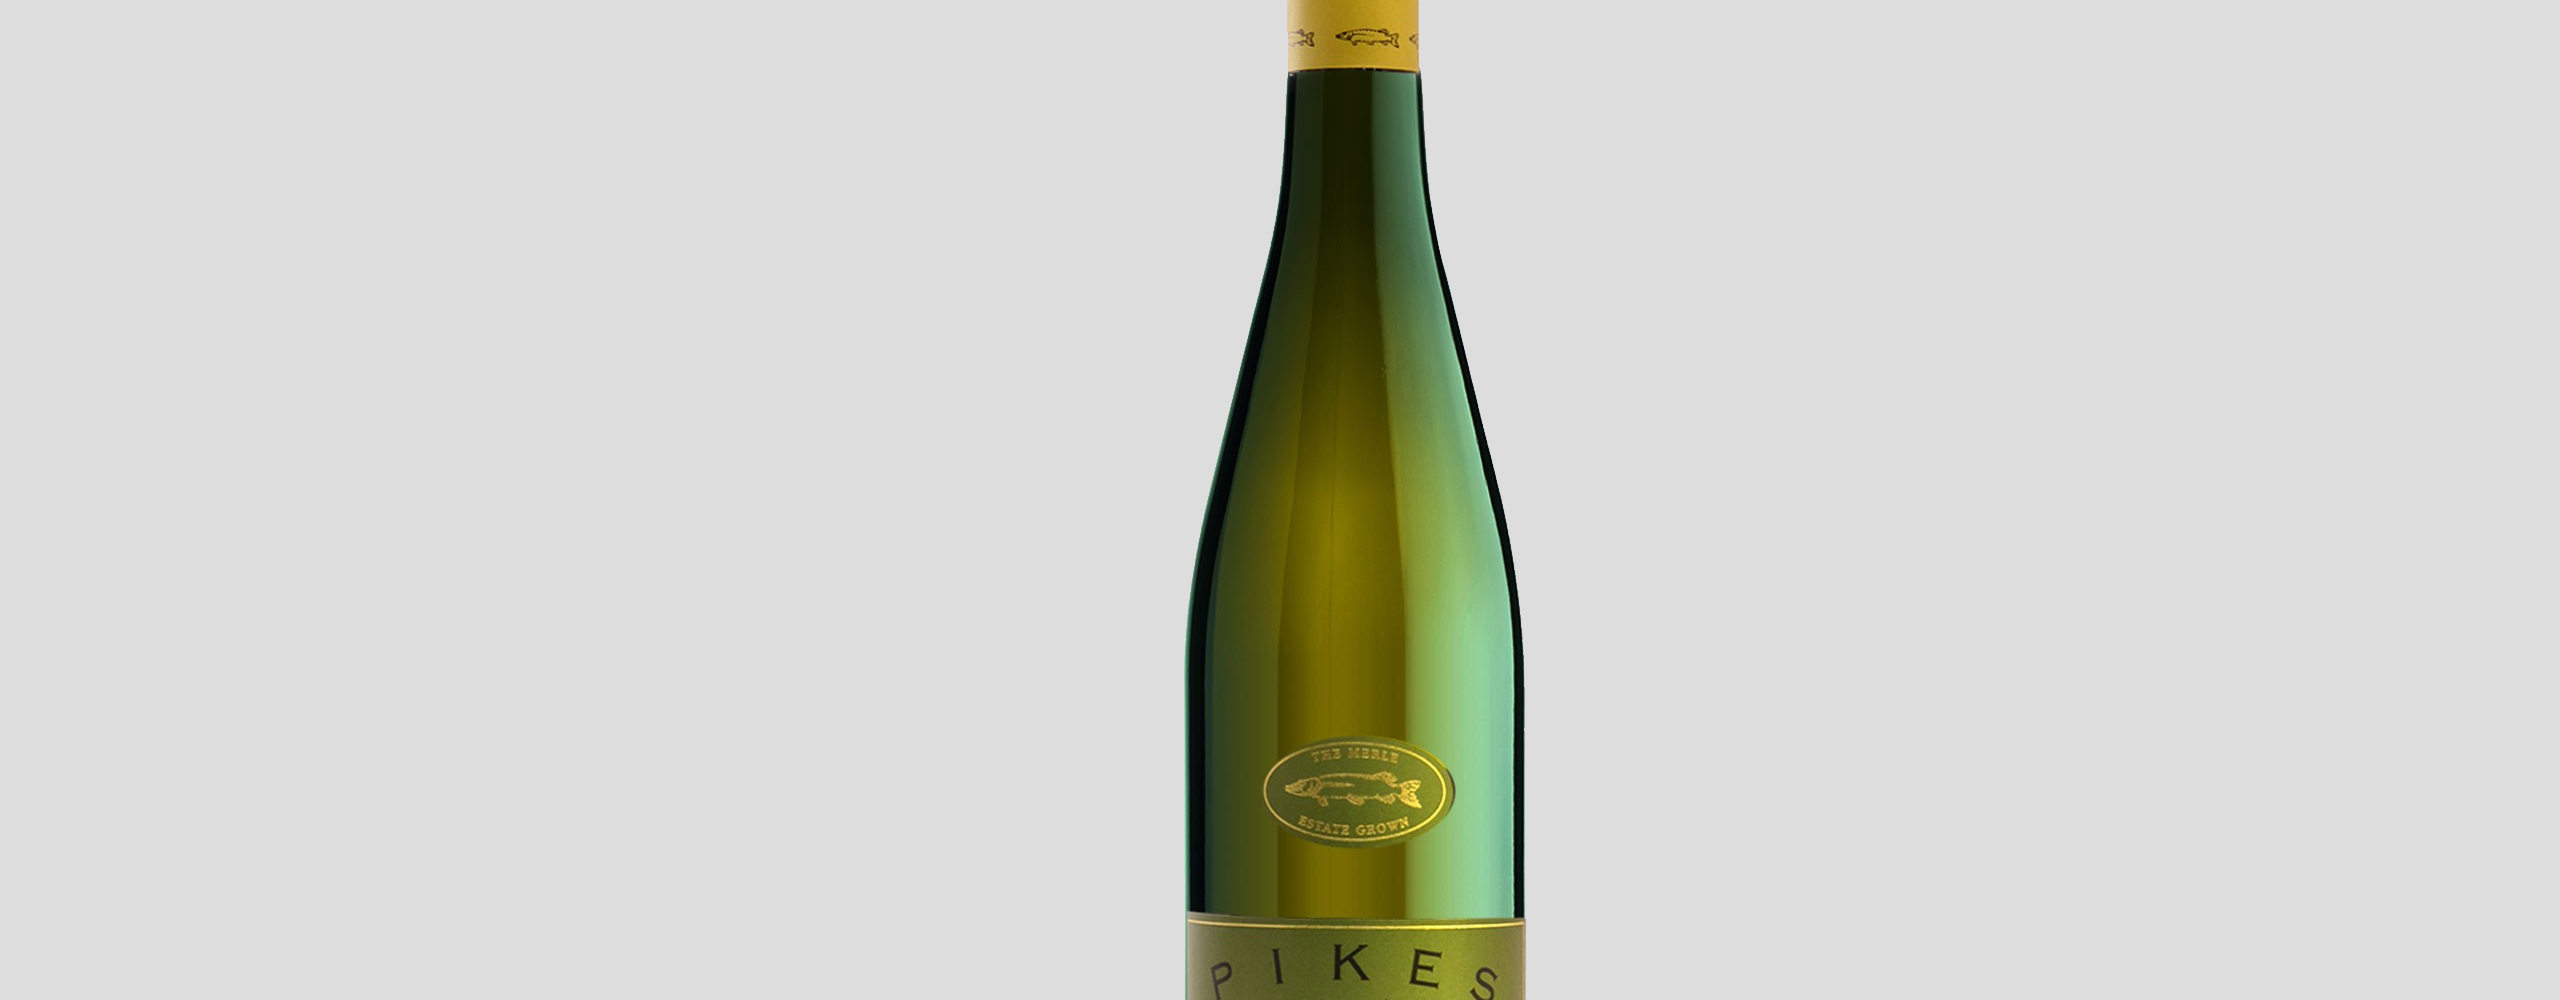 2017 Riesling Reserve, 'The Merle', Pikes